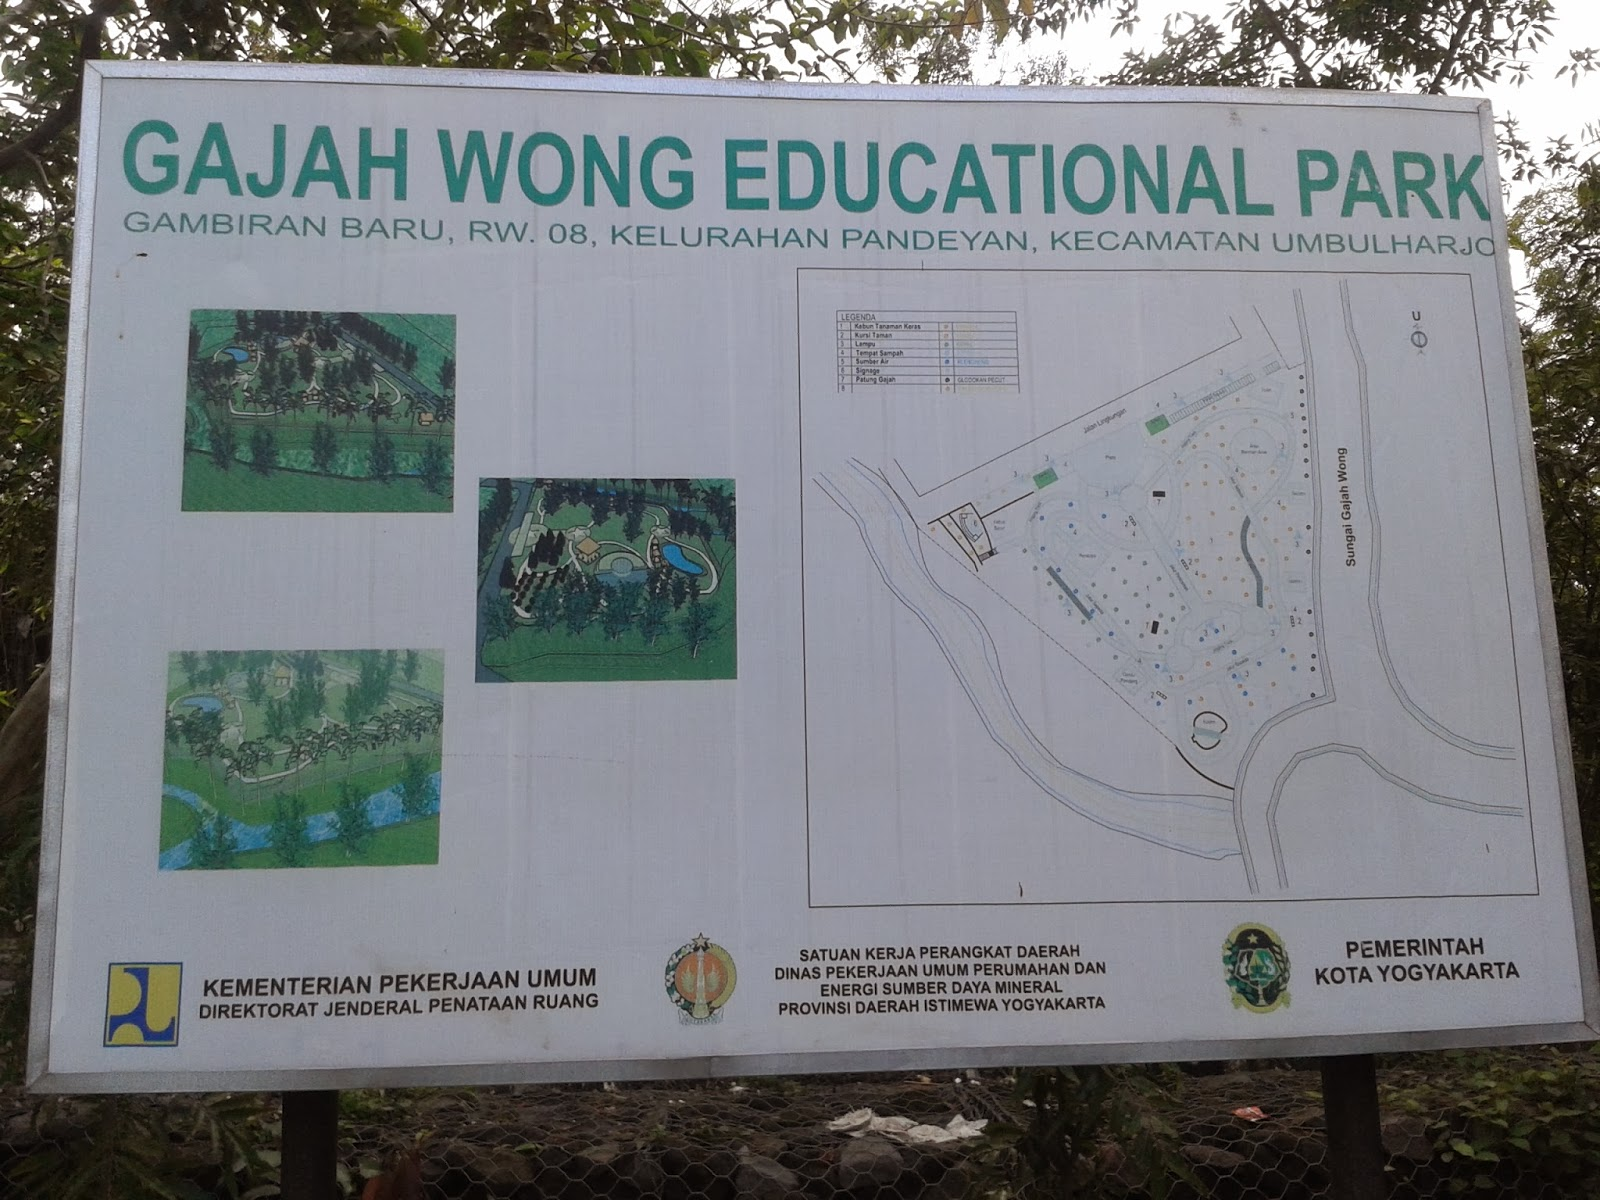 Gajah Wong Education Park